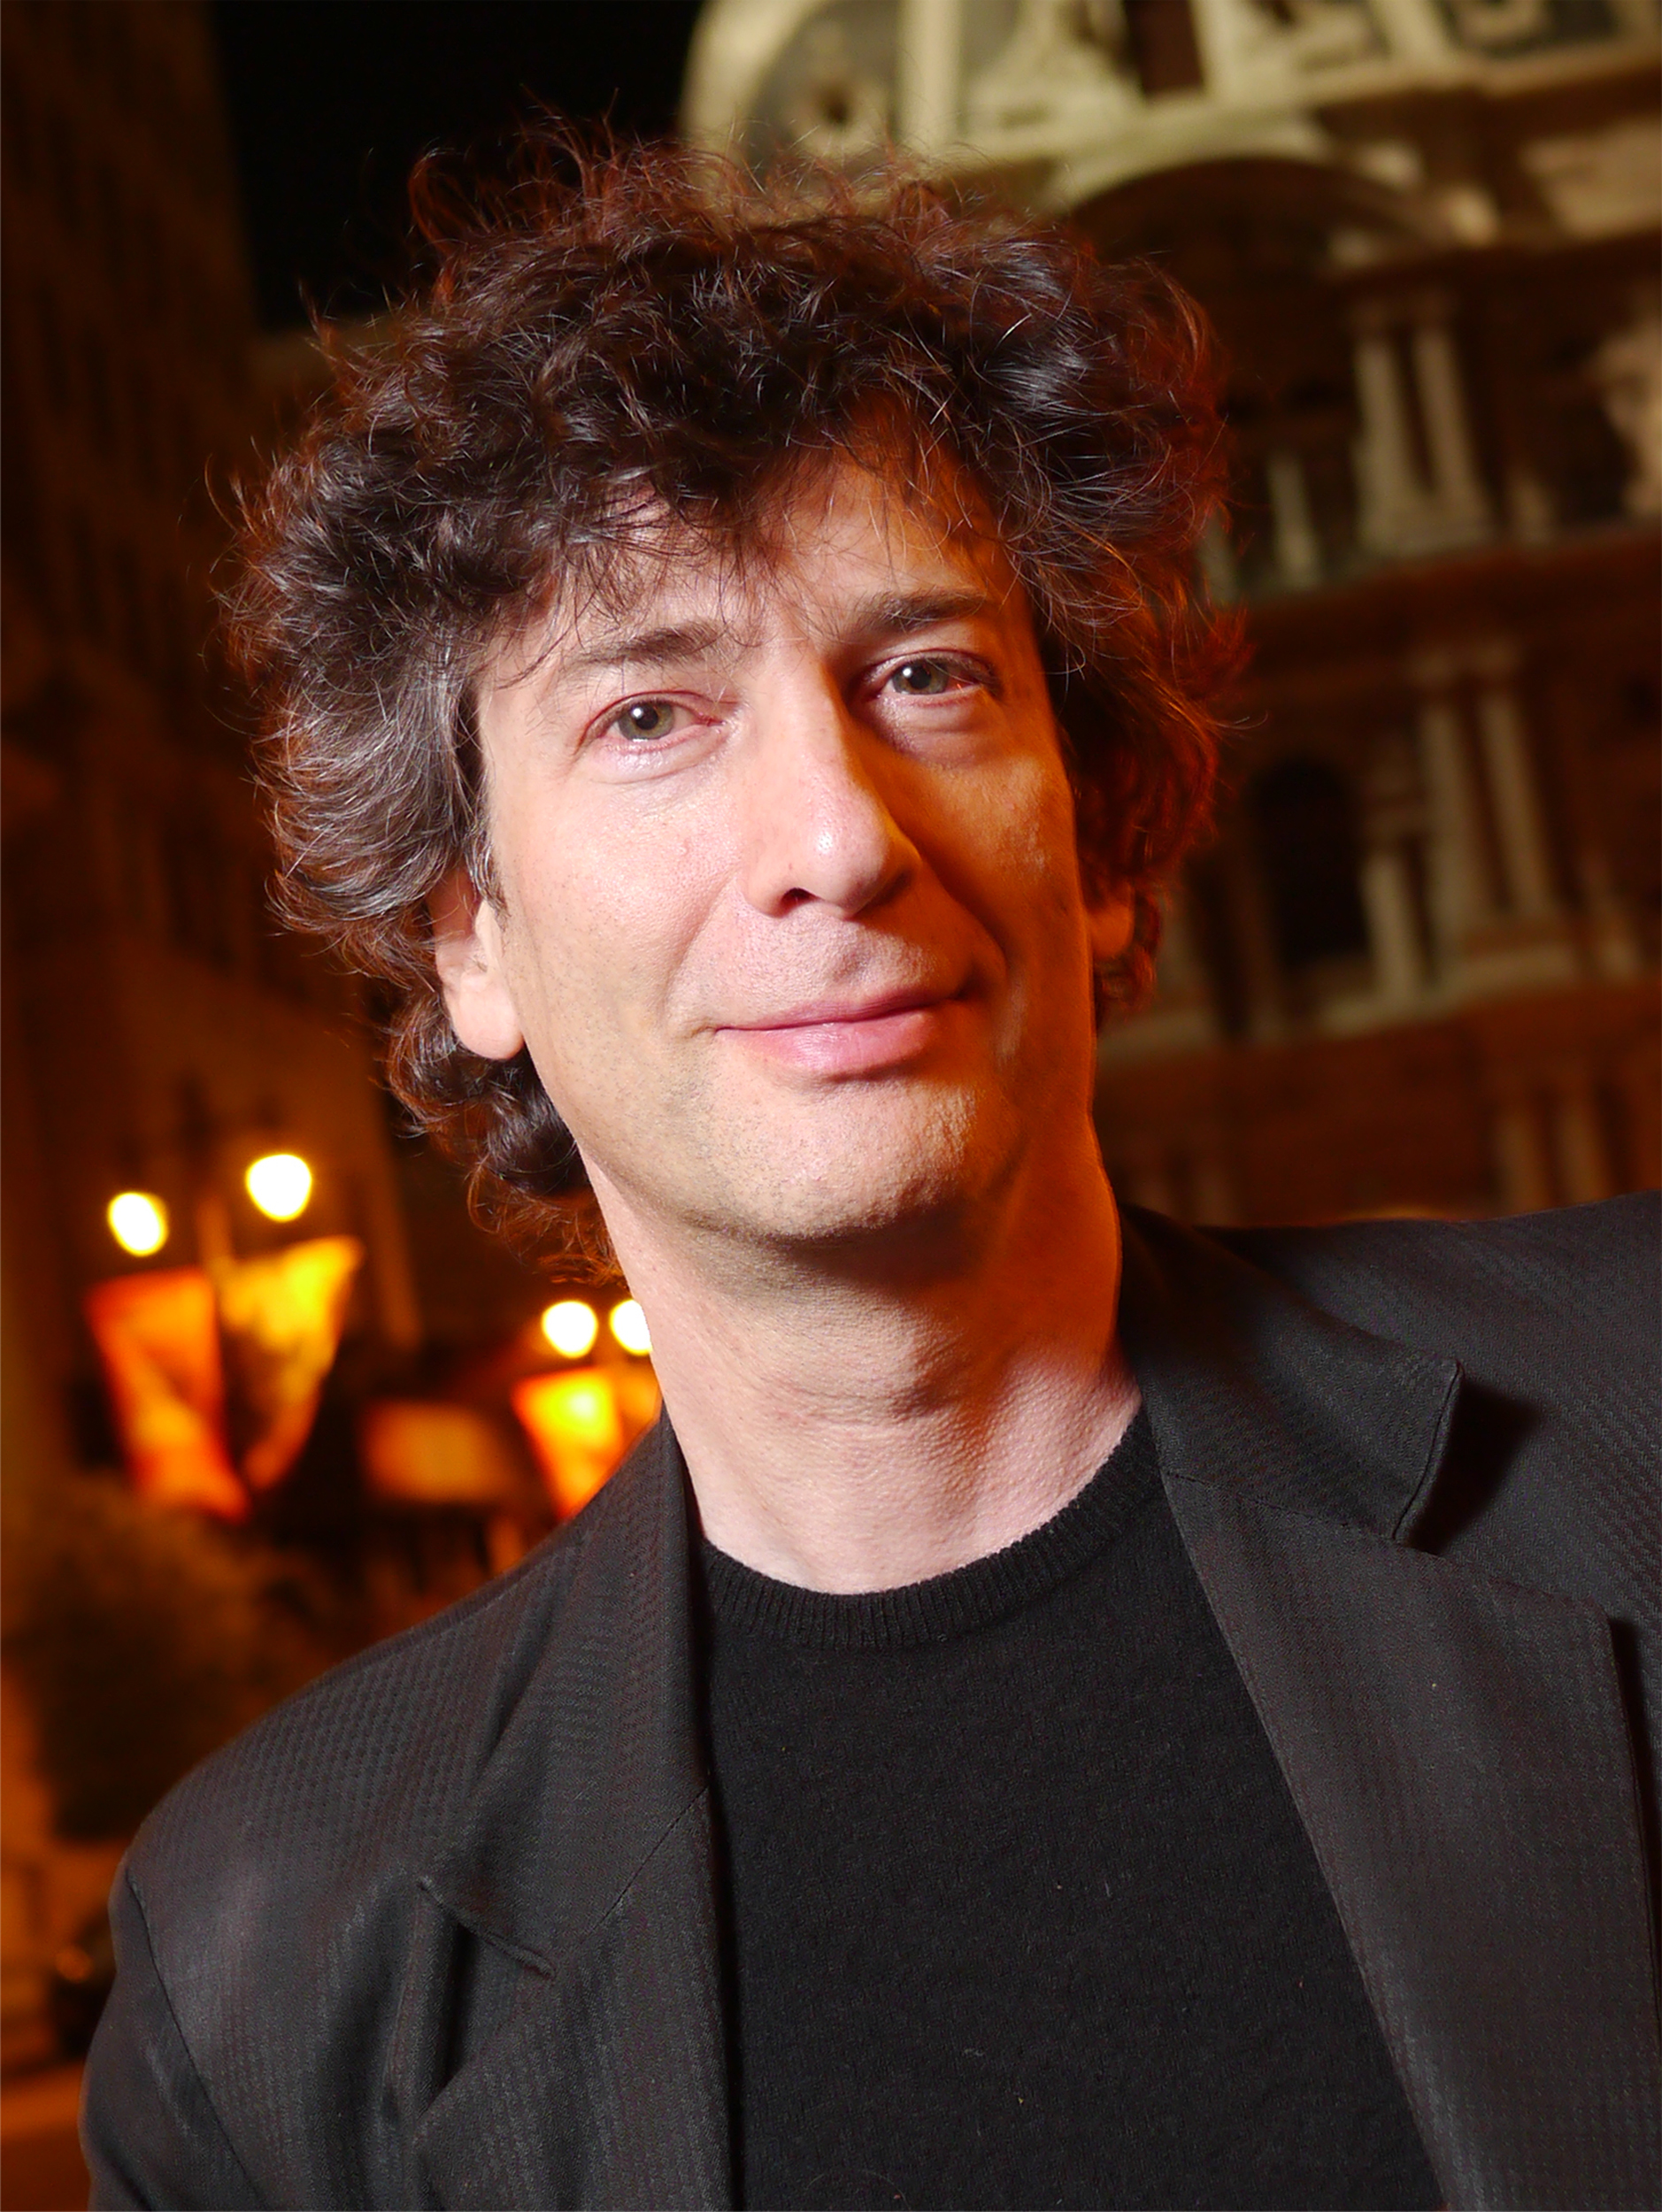 Happy birthday Neil Gaiman!